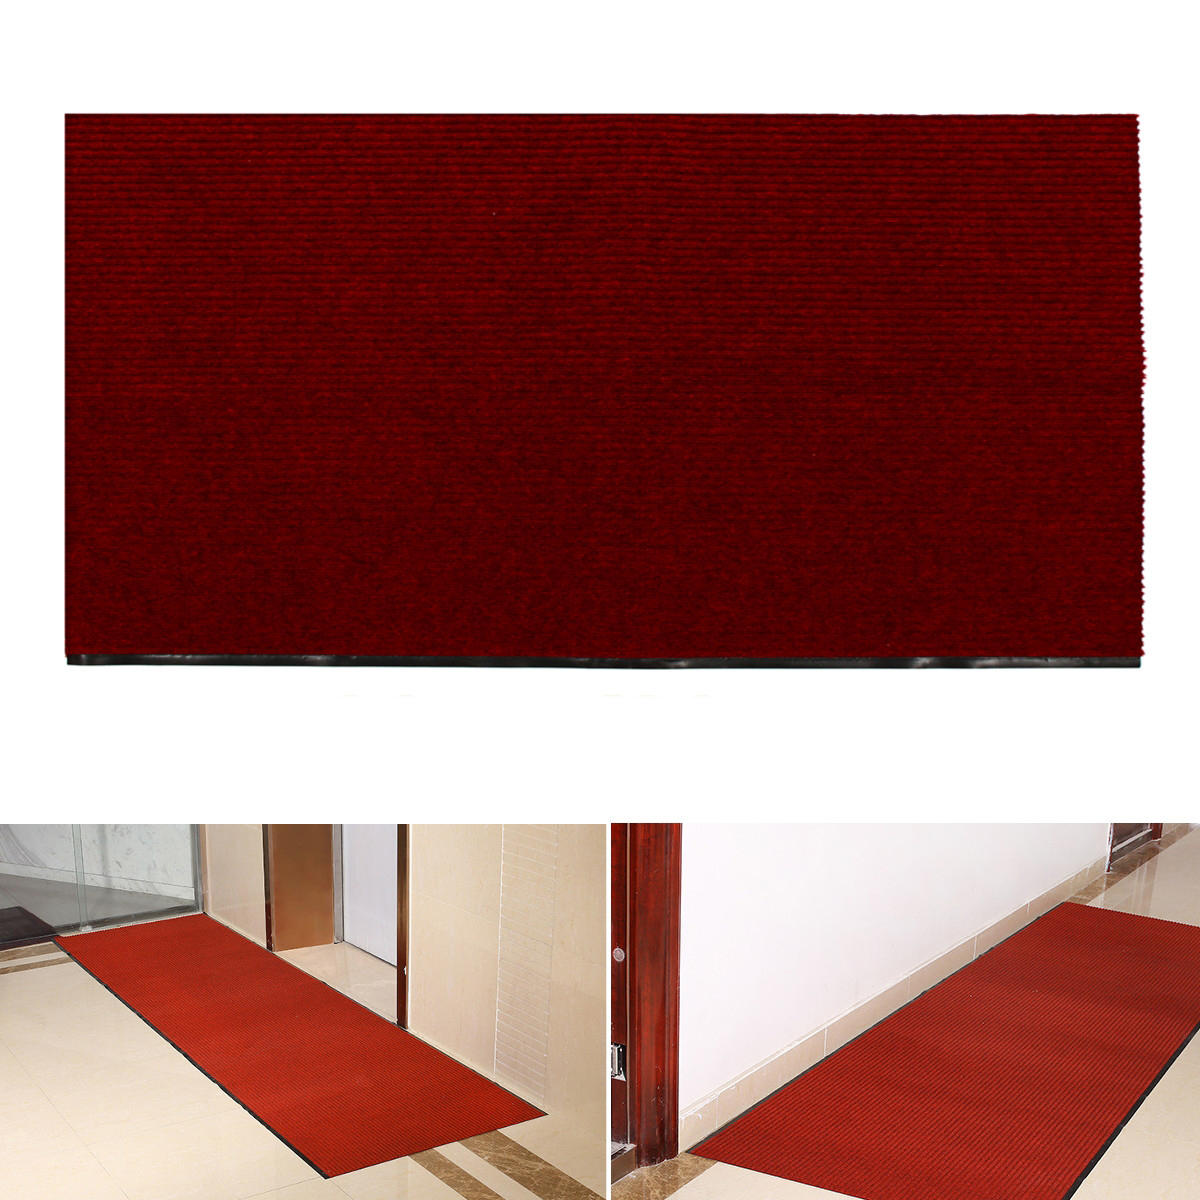 Anti-Skid Rug Carpet Living Room Home Bedroom Carpet Bathroom Floor Mat Decor